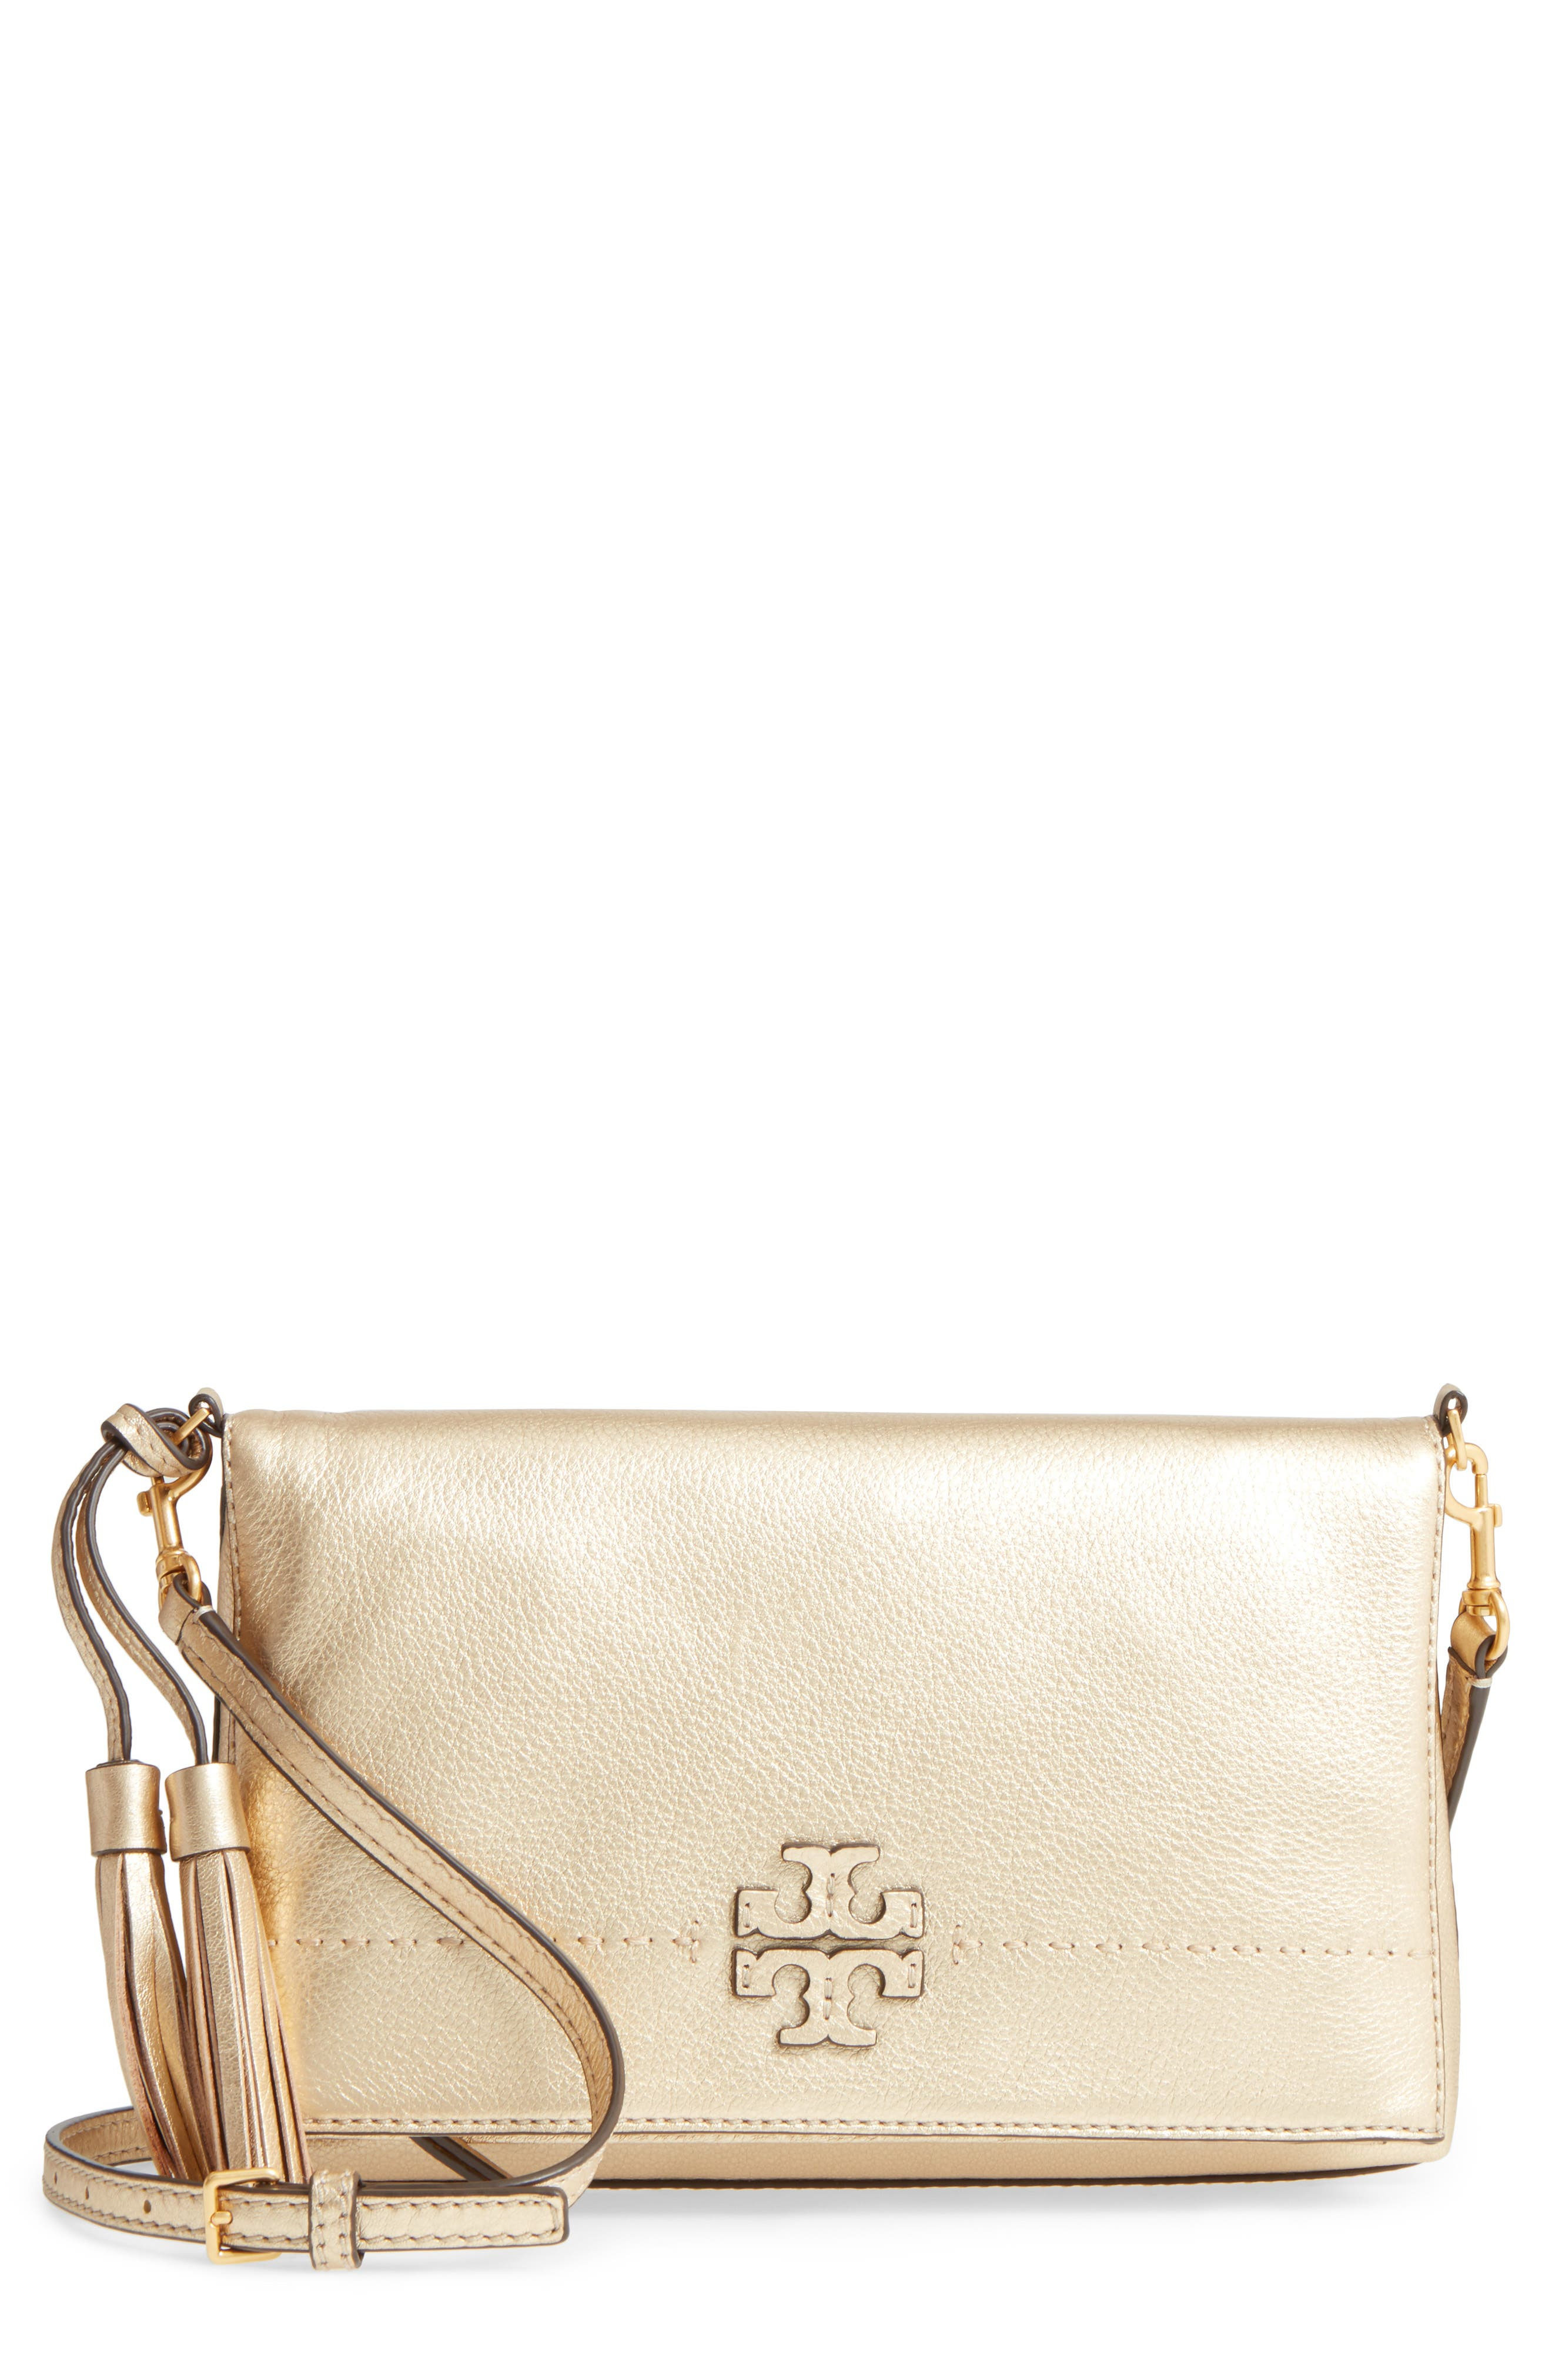 McGraw Metallic Leather Crossbody Bag,                             Main thumbnail 1, color,                             Gold